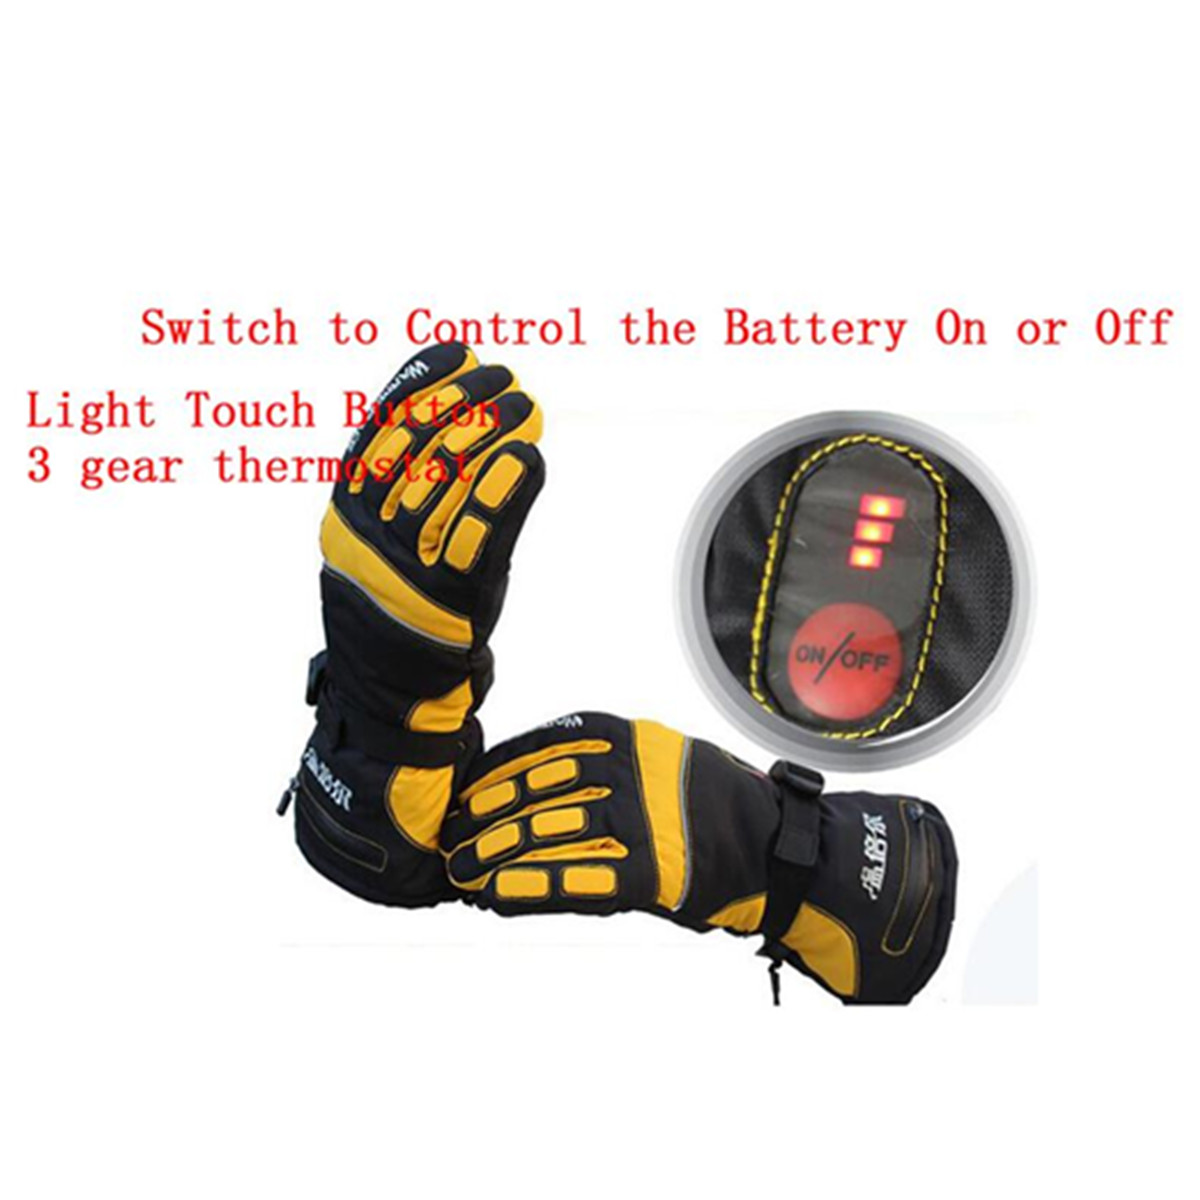 WARMSPACE 2000mAh Yellow/Blue Electric Heated Gloves Hands Motorcycle Warm Smart W/ Rechargeable Battery M/XL